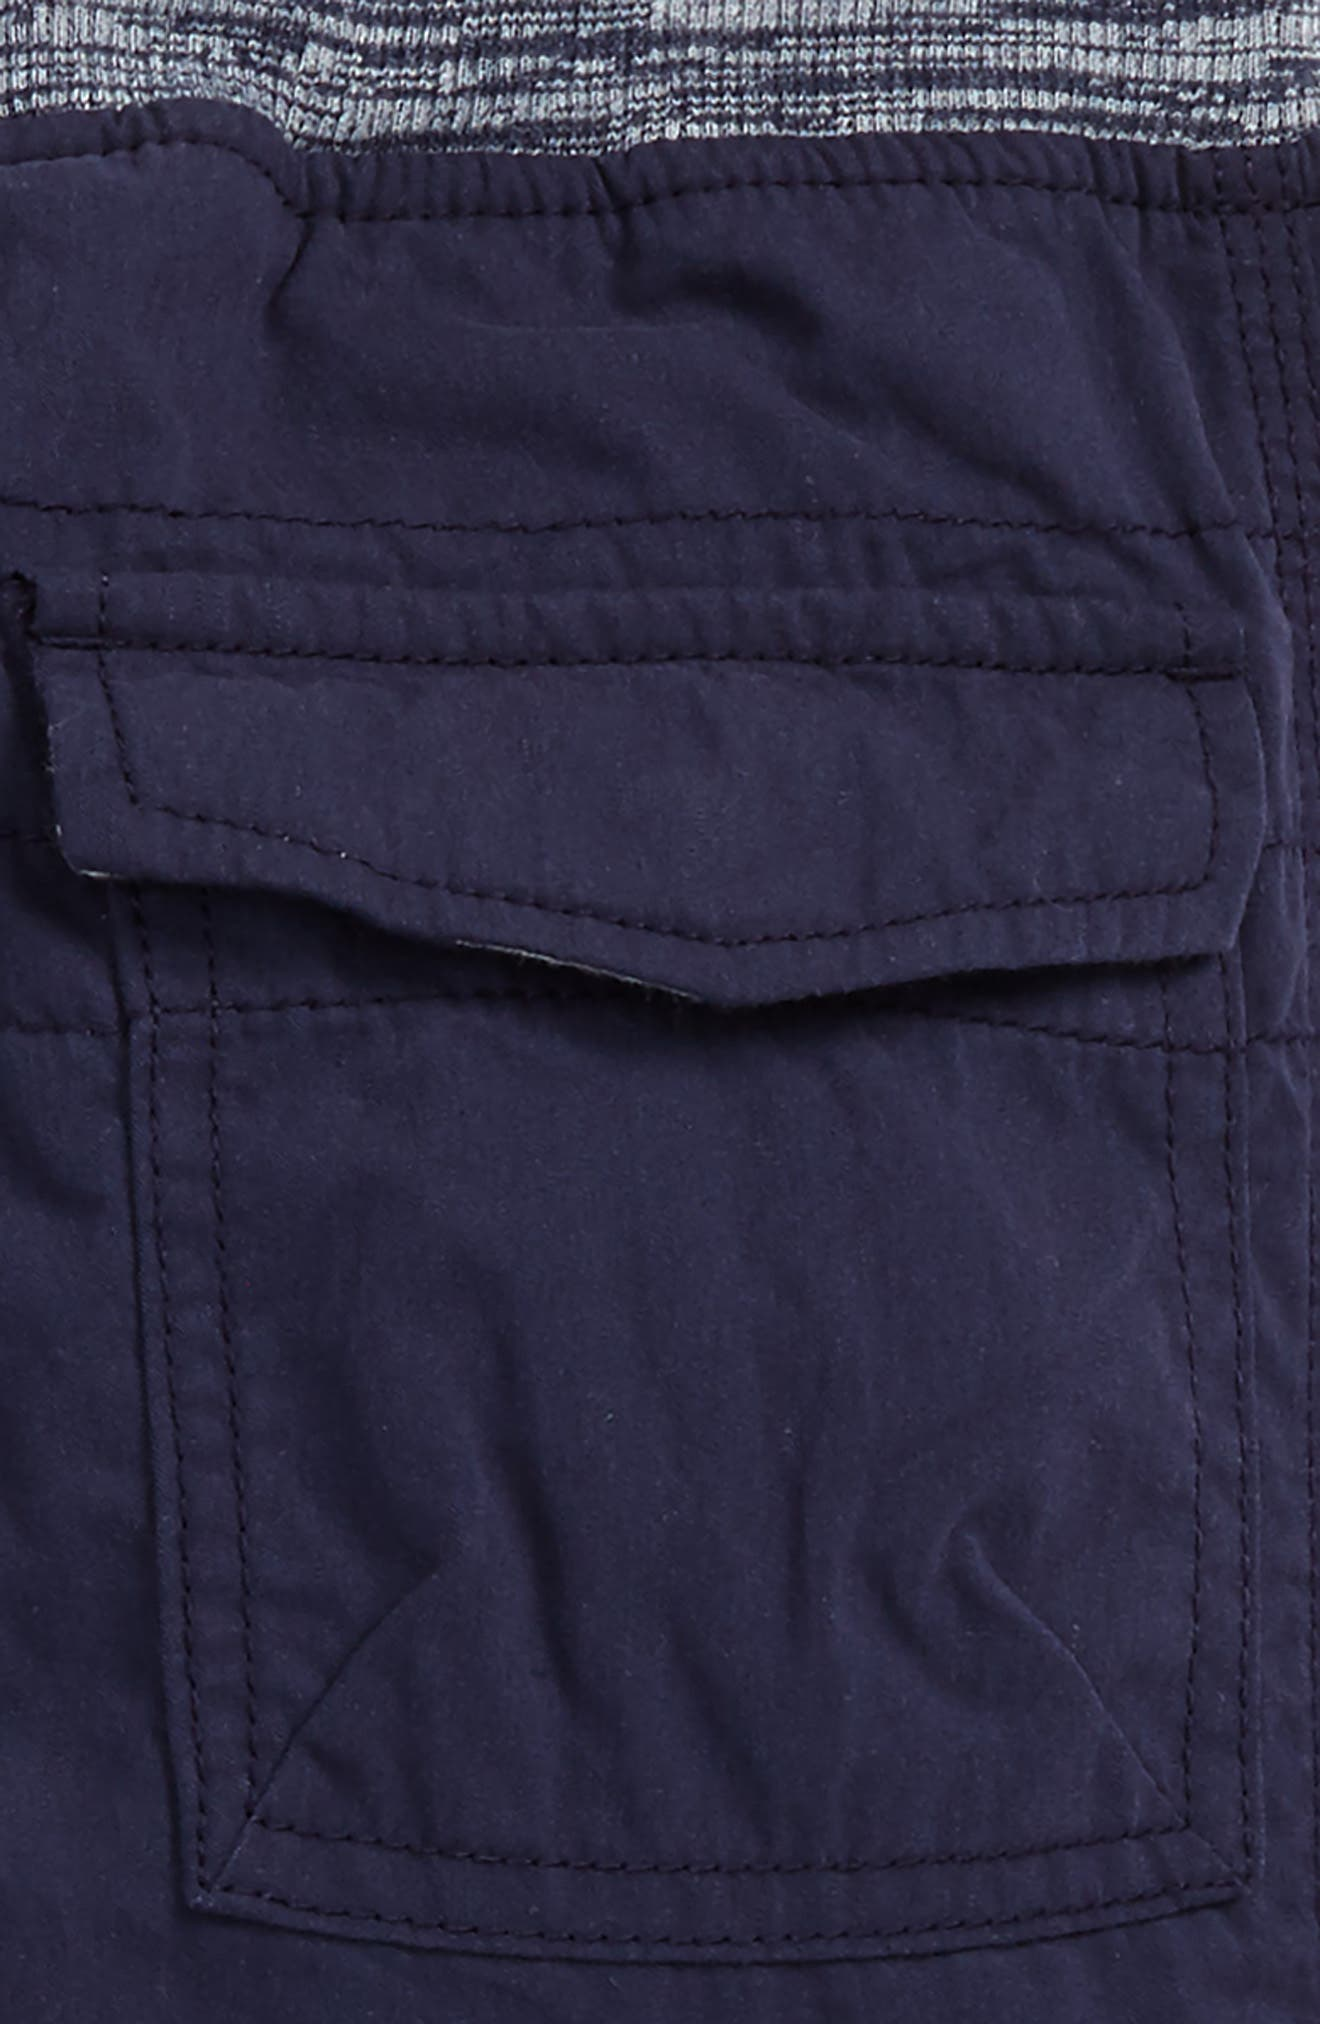 Lined Cargo Pants,                             Alternate thumbnail 3, color,                             Navy